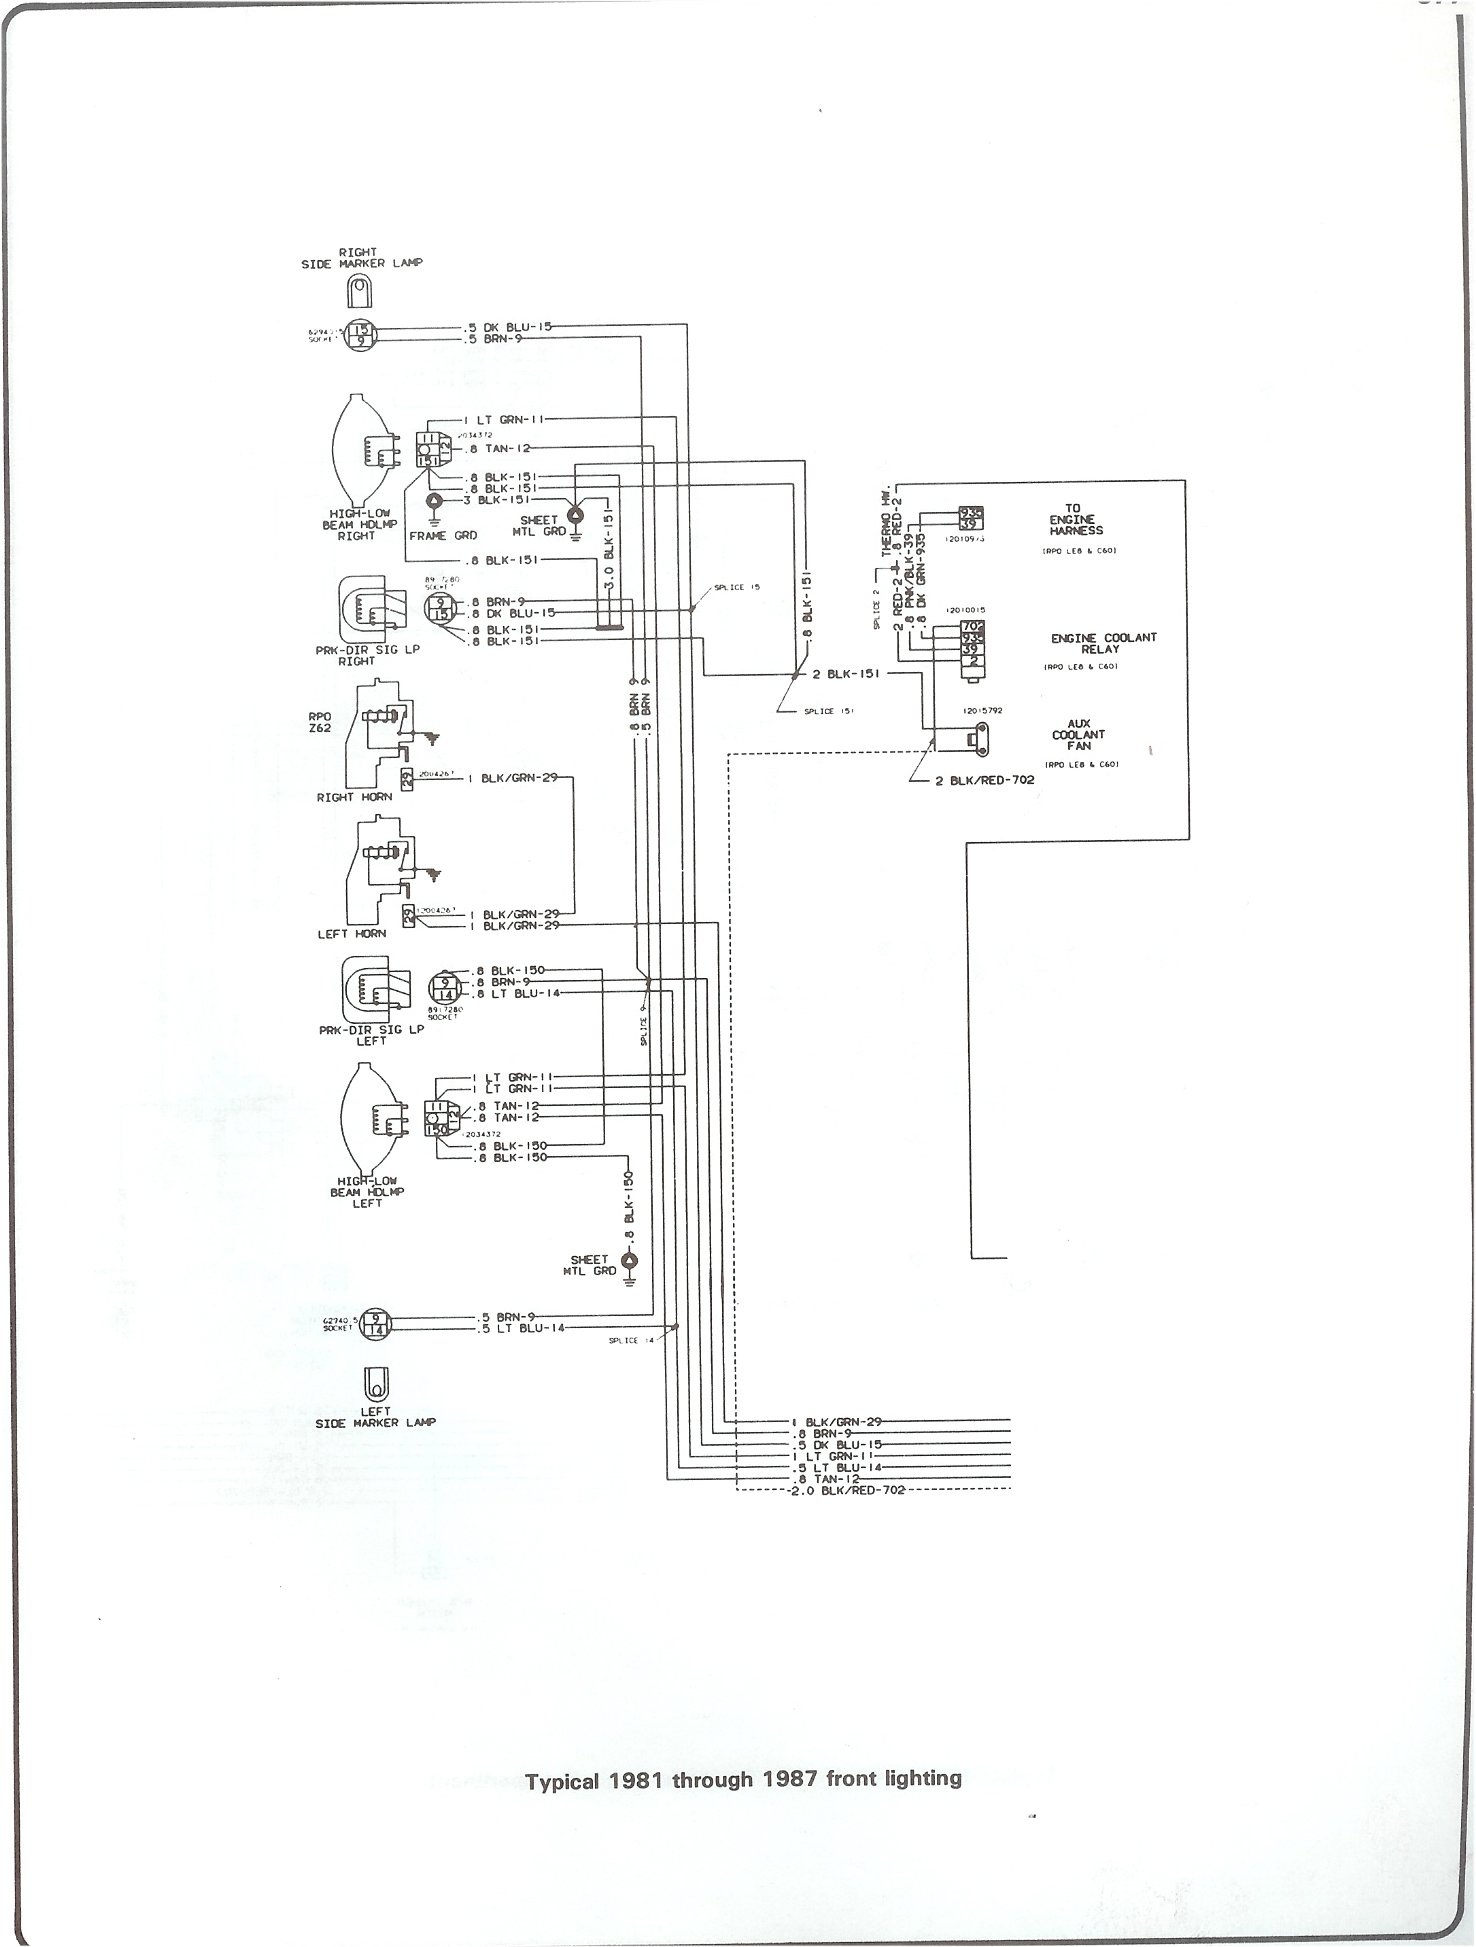 complete 73 87 wiring diagrams rh forum 73 87chevytrucks com 1991 Jeep Wrangler Wiring Diagram 1991 Jeep Wrangler Wiring Diagram